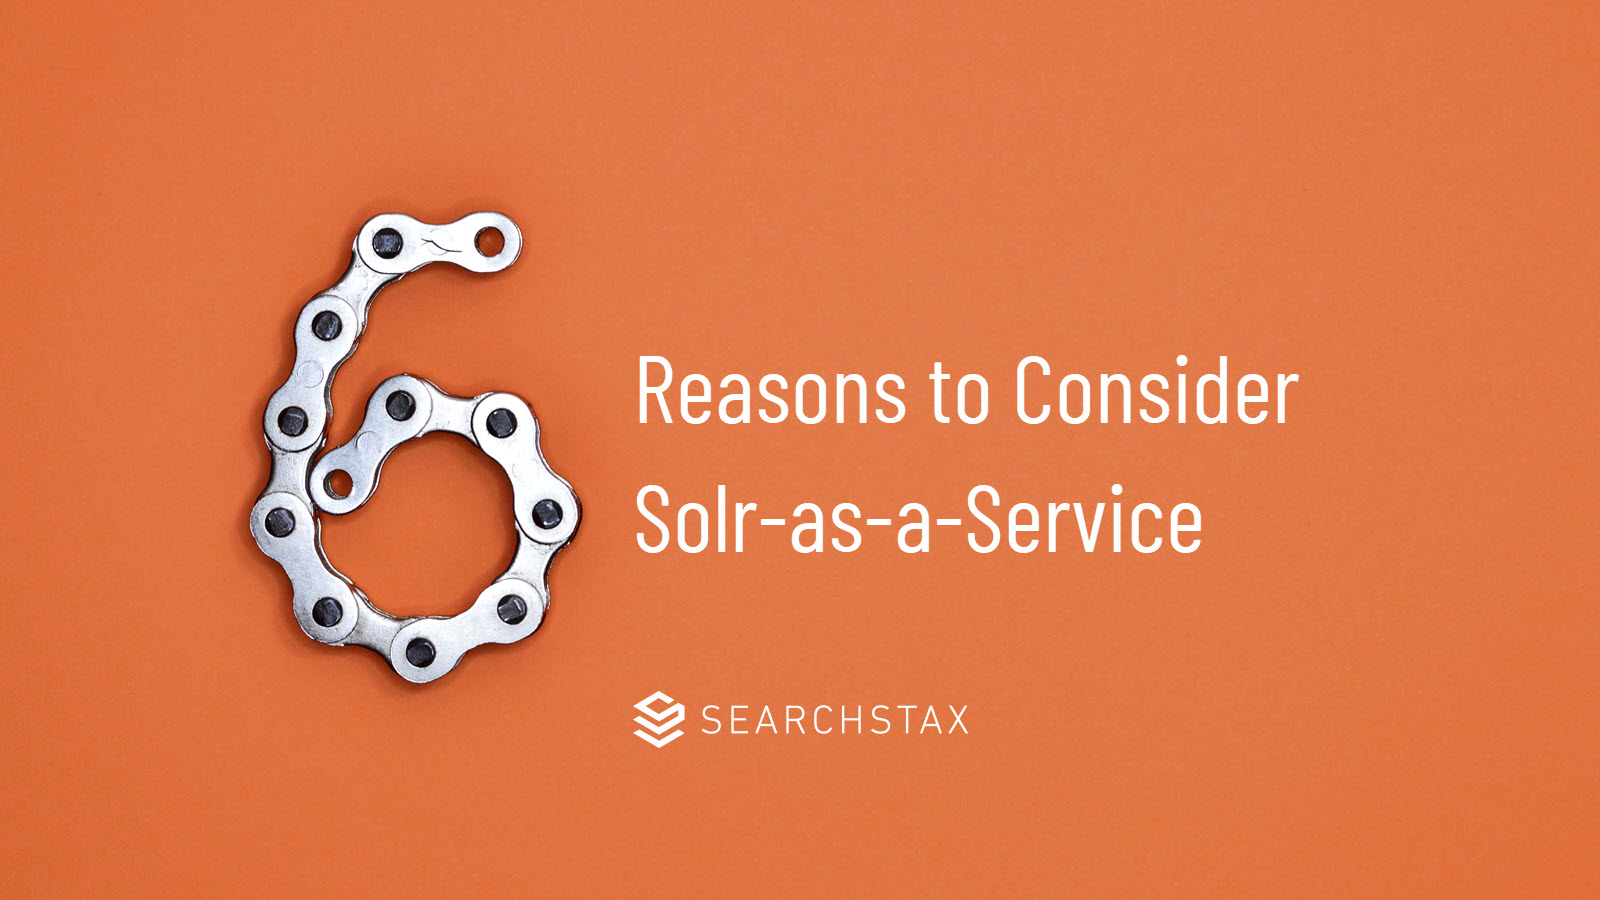 6 Reasons to Consider SearchStax Solr-as-a-Service